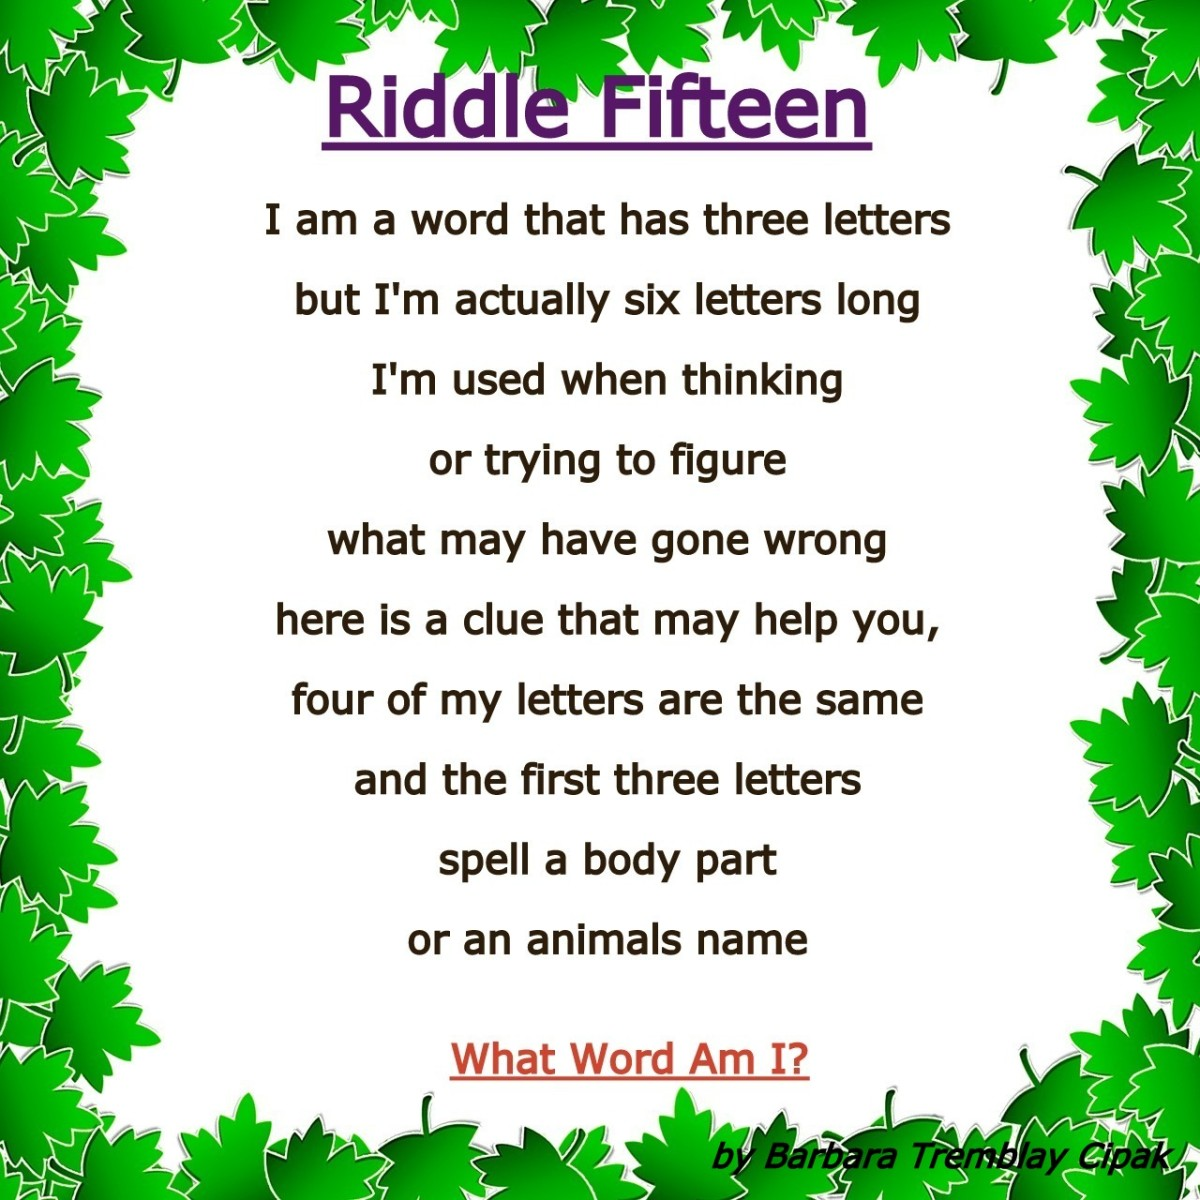 Riddle Fifteen: I am a word that has three letters, but I'm actually six letters long...